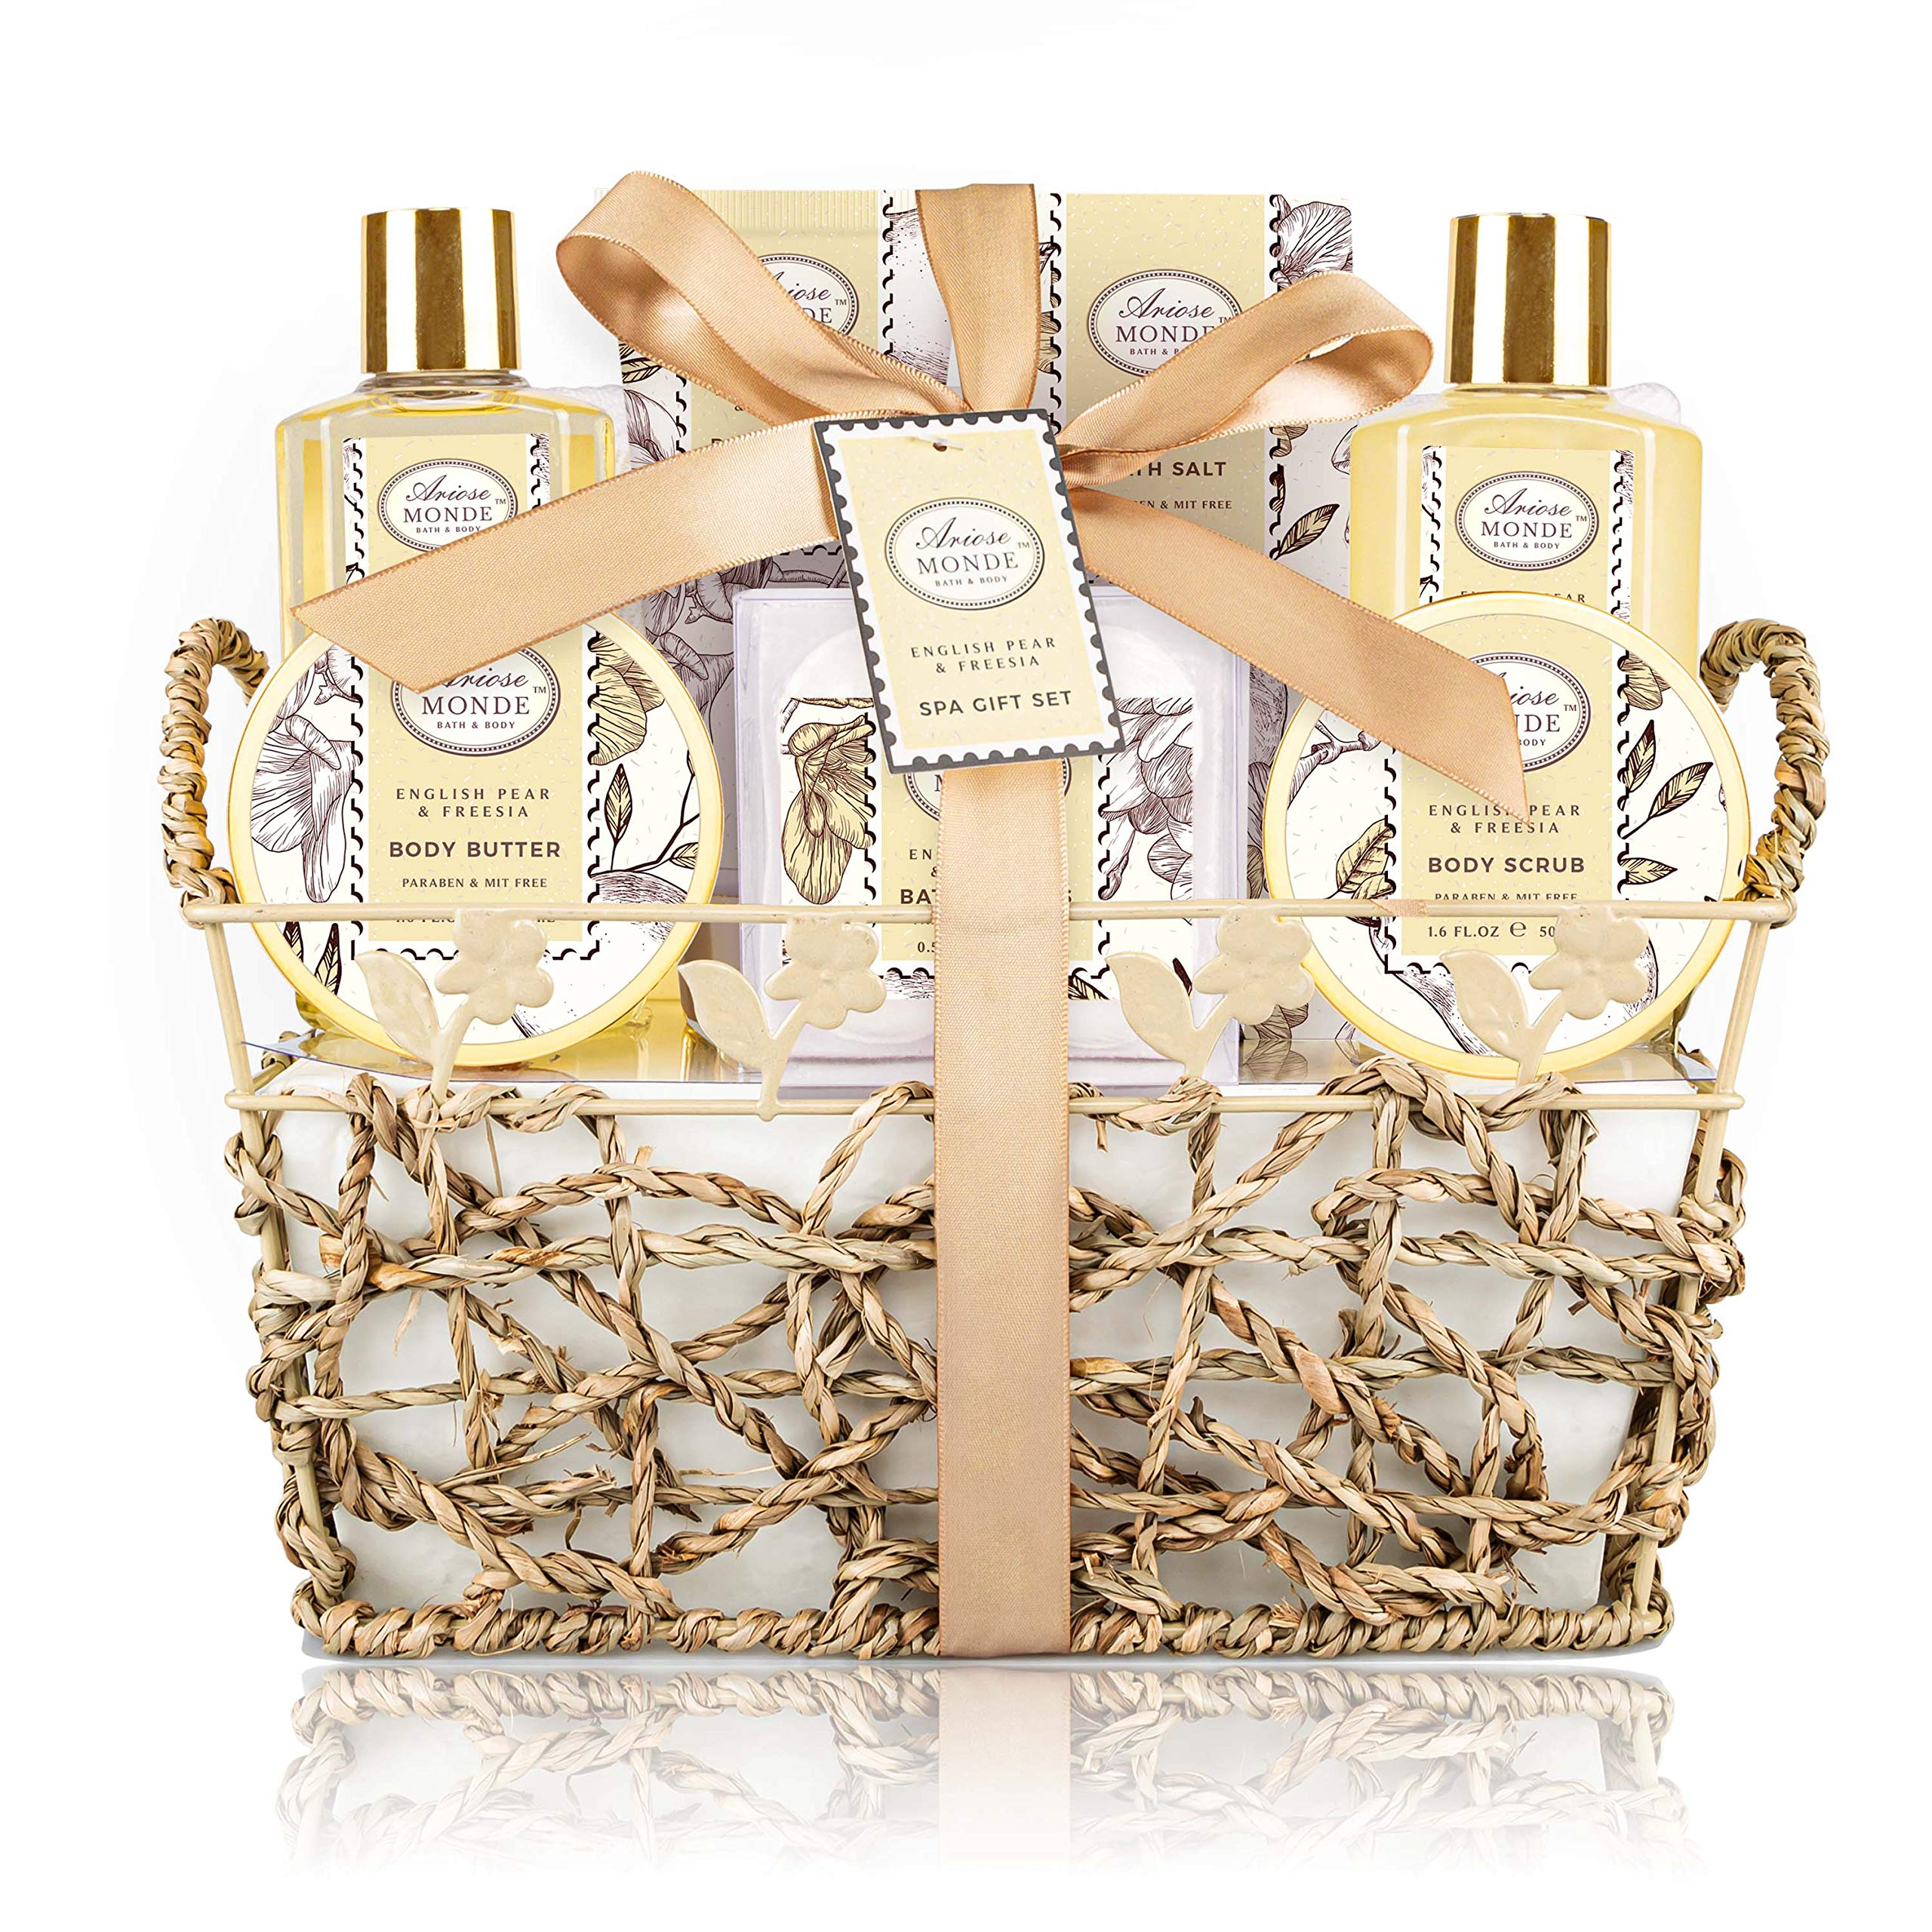 Bath & Shower Spa Gift Basket Set, with English Pear & Freesia Fragrance Bath Gift Basket for Women & Men Includes Body Lotion, Shower Gel, Bath Salts, Bubble Bath, Body Scrub and More, 8 Pcs by ArioseMonde